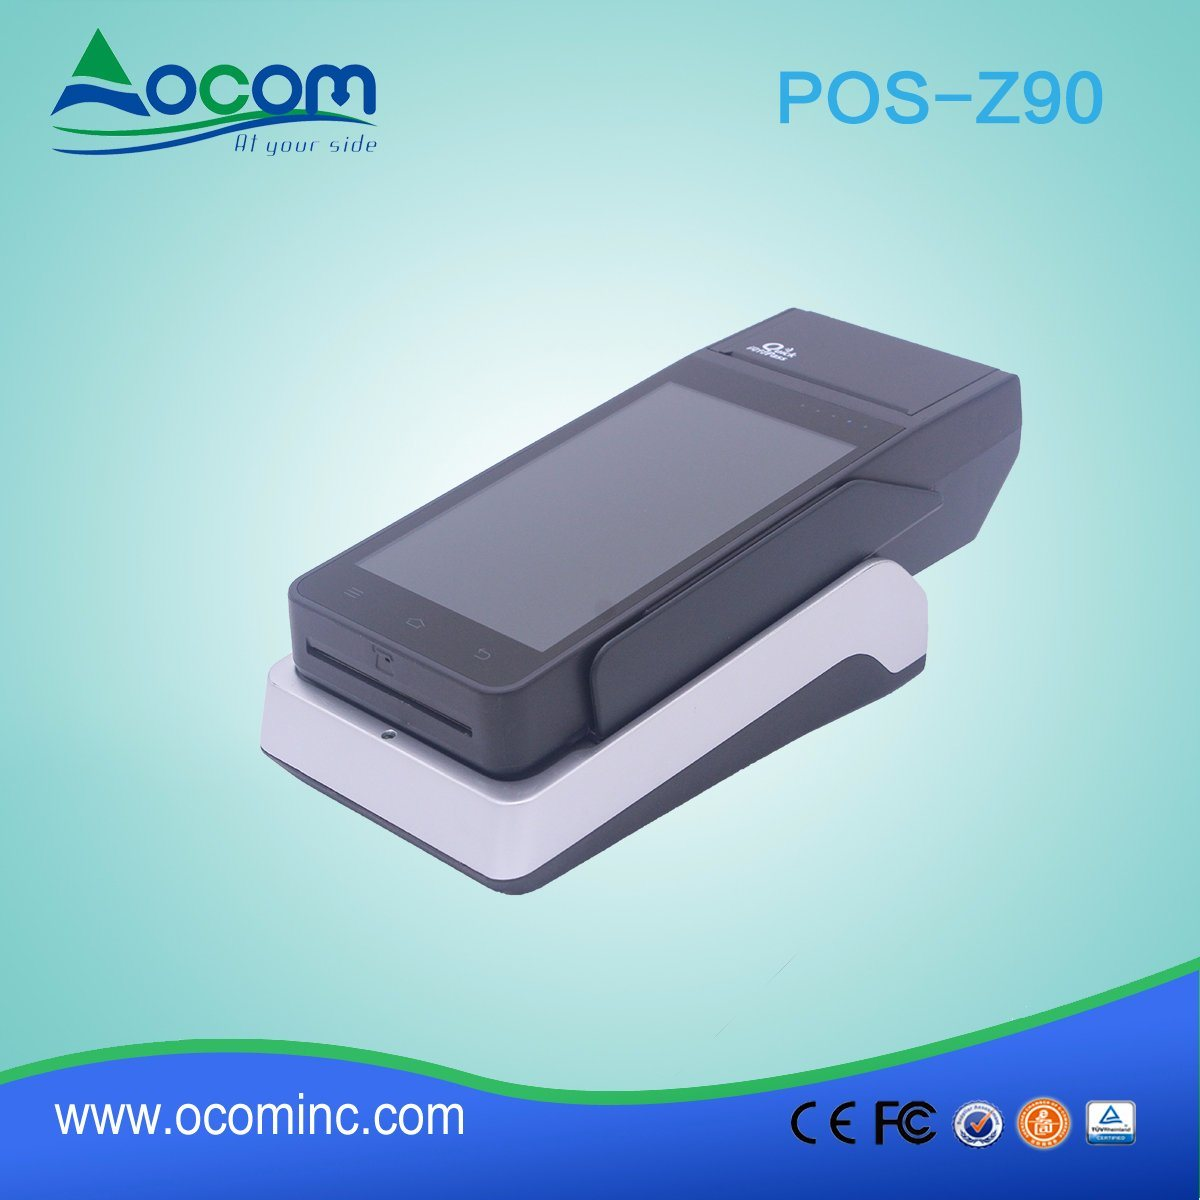 (POS-Z90) Android Handheld POS Terminal with 58mm Thermal Printer